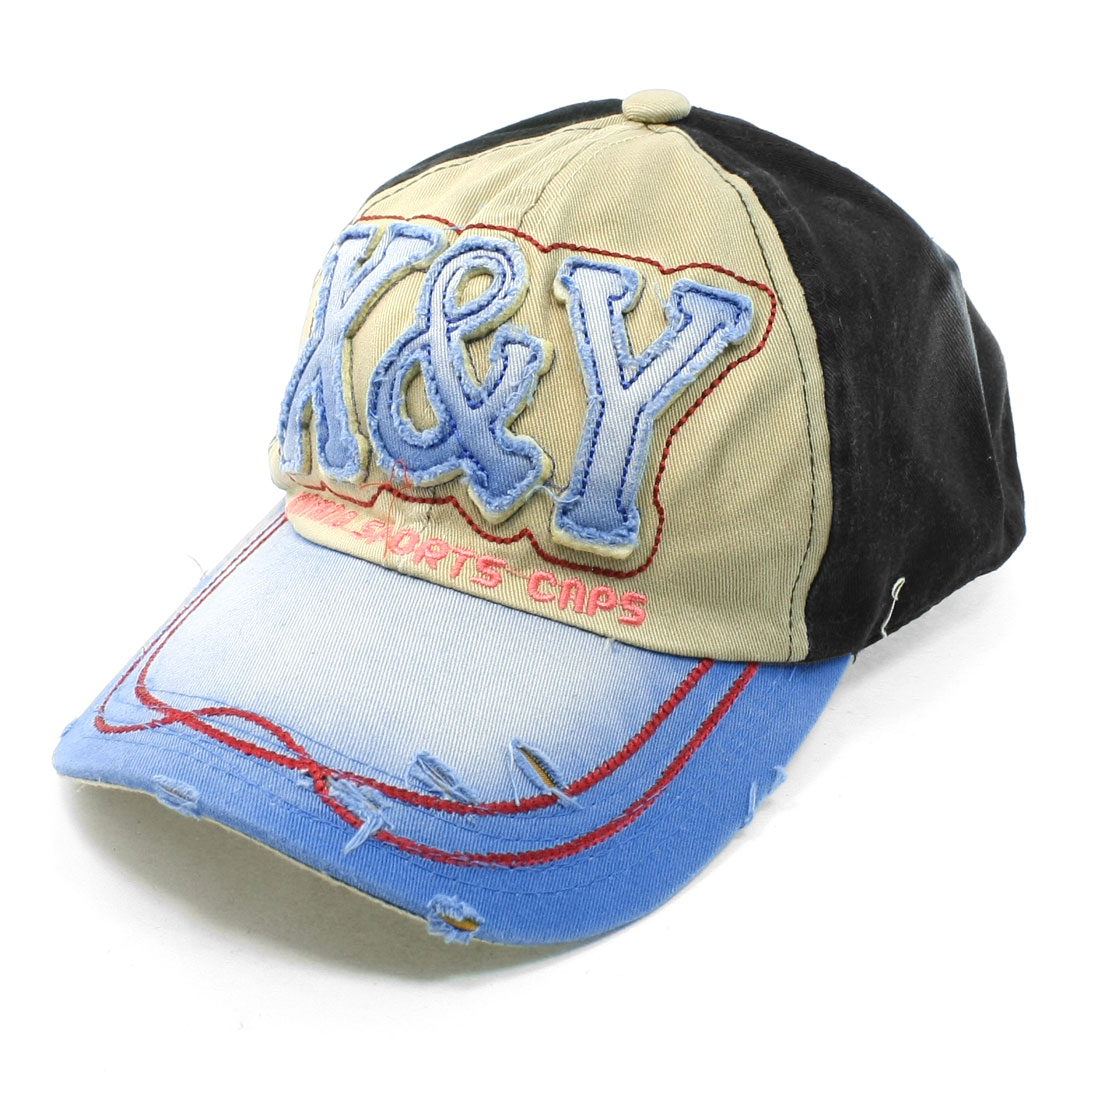 Unisex Embroidering Letter Side Decor Adjustable Baseball Hat Khaki Blue